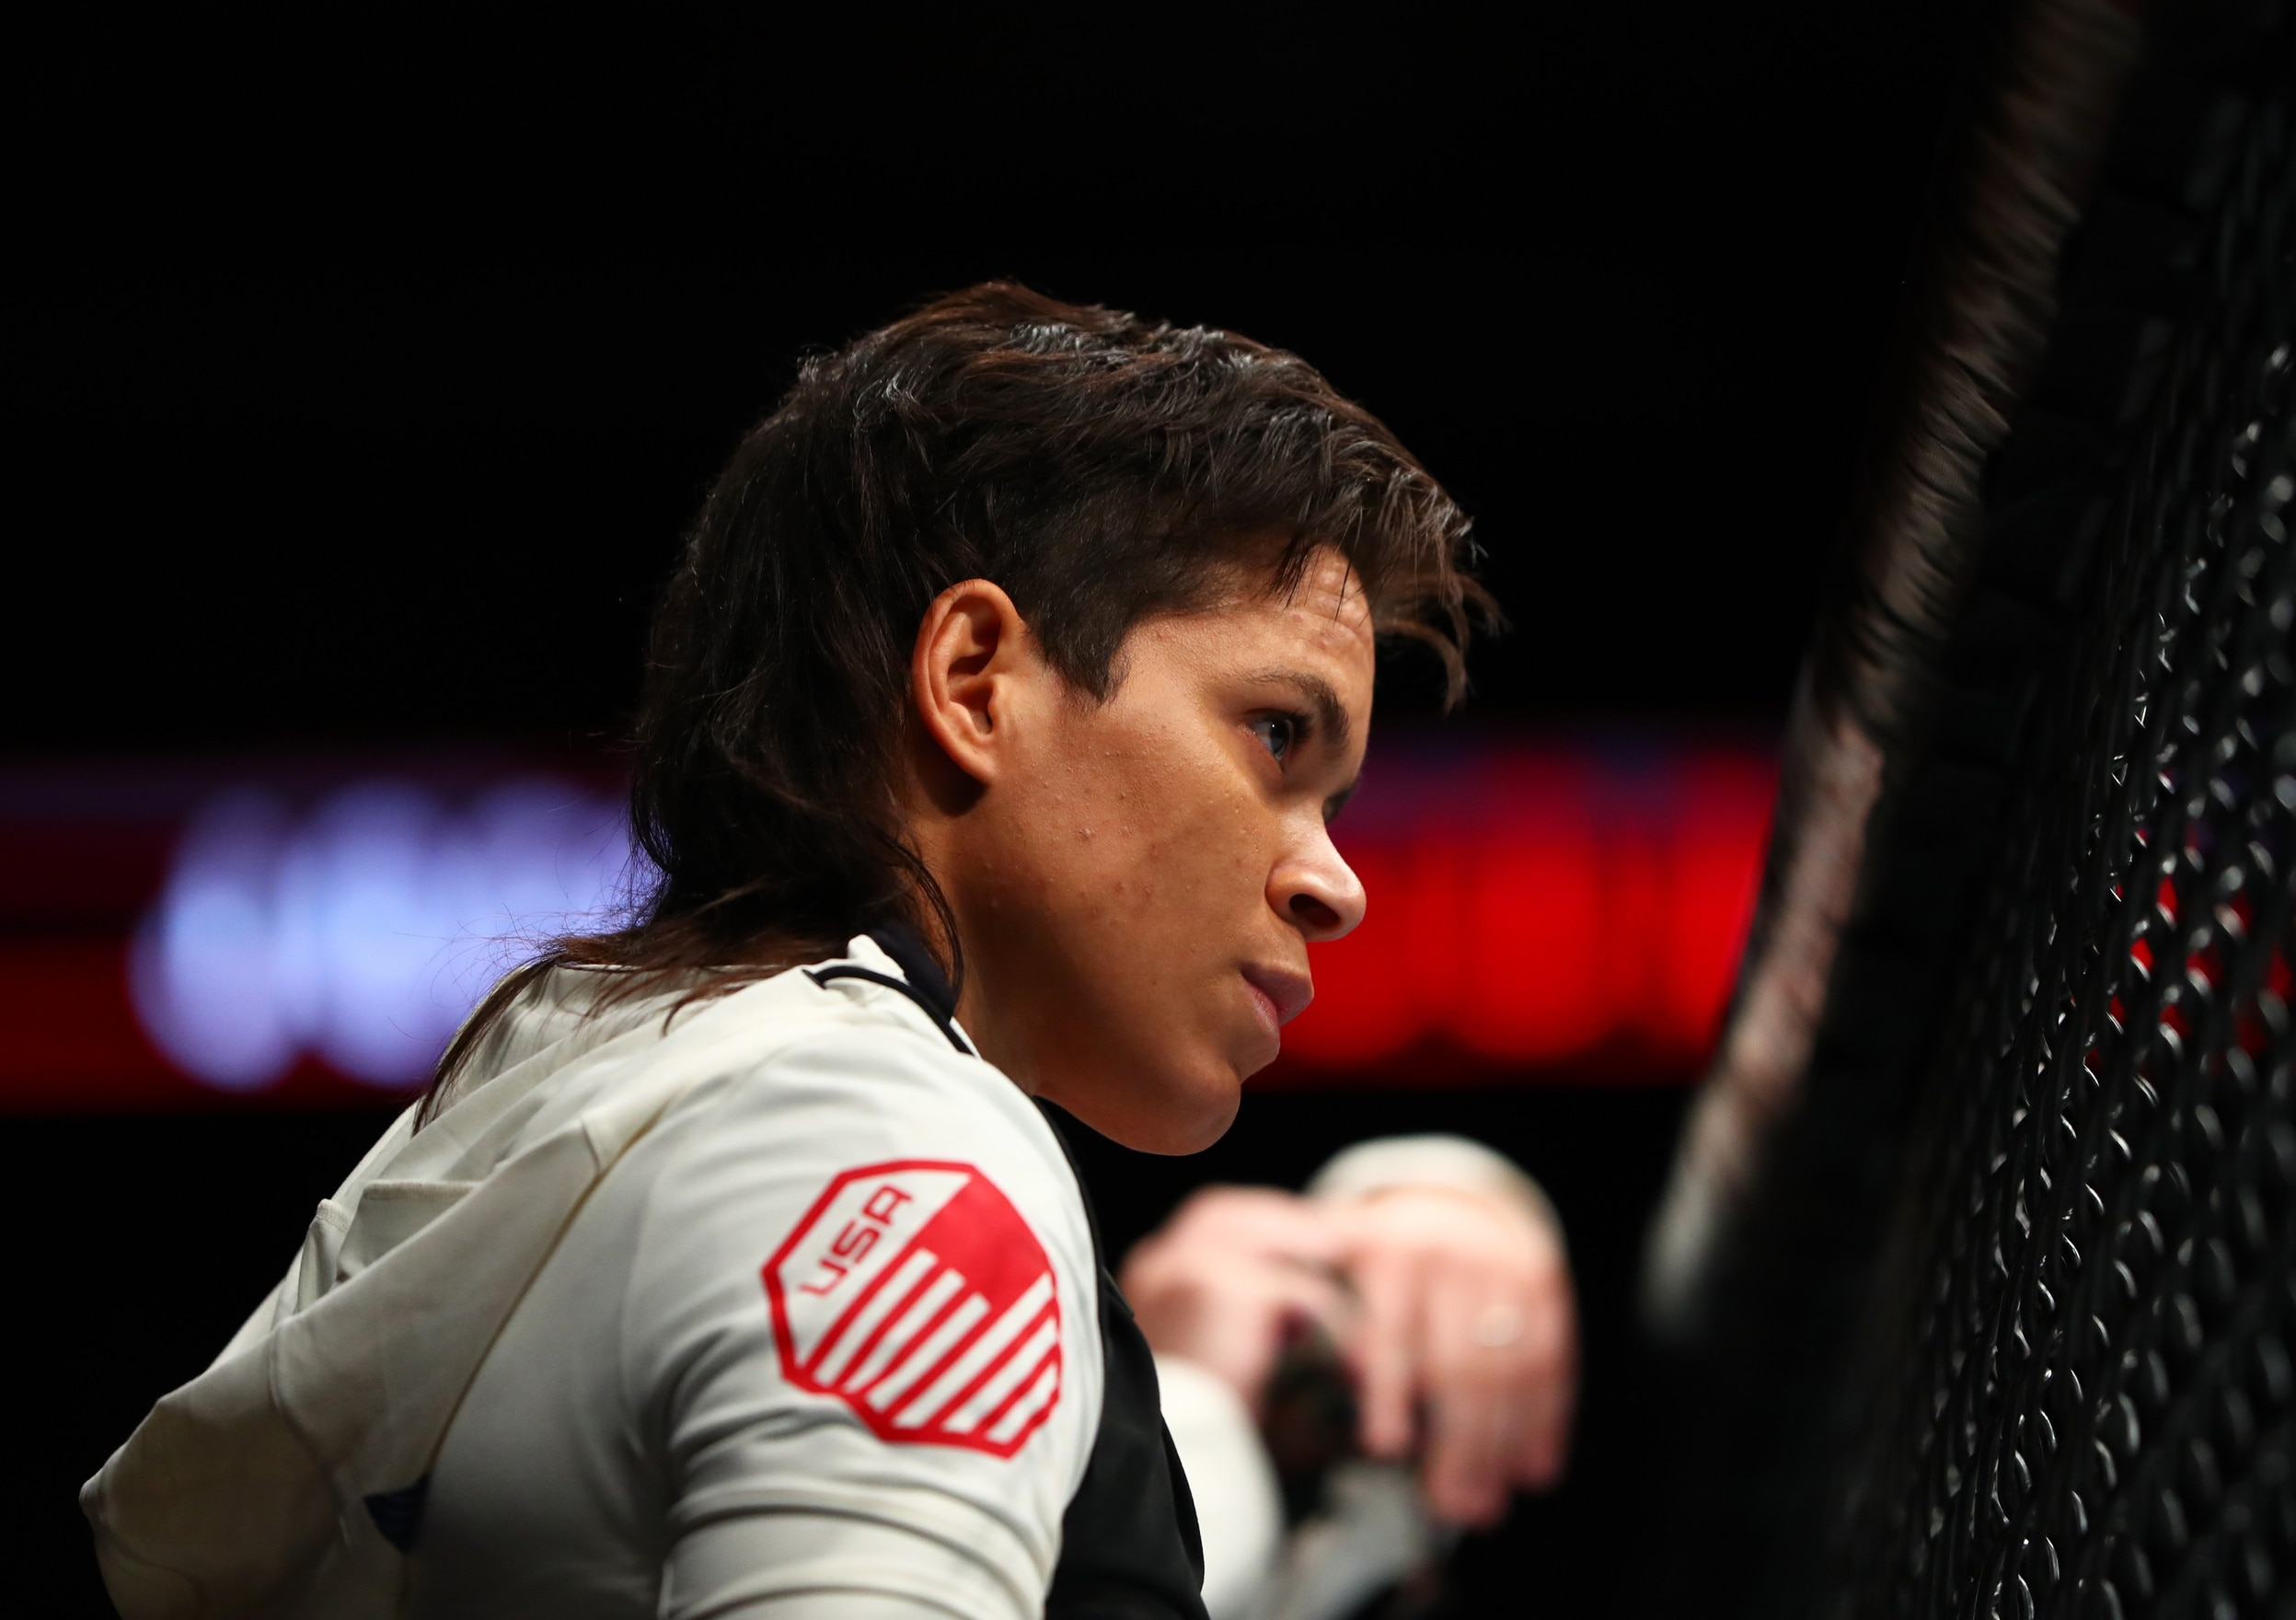 Amanda Nunes pulling out with an illness caused UFC 213 ticket prices to plummet